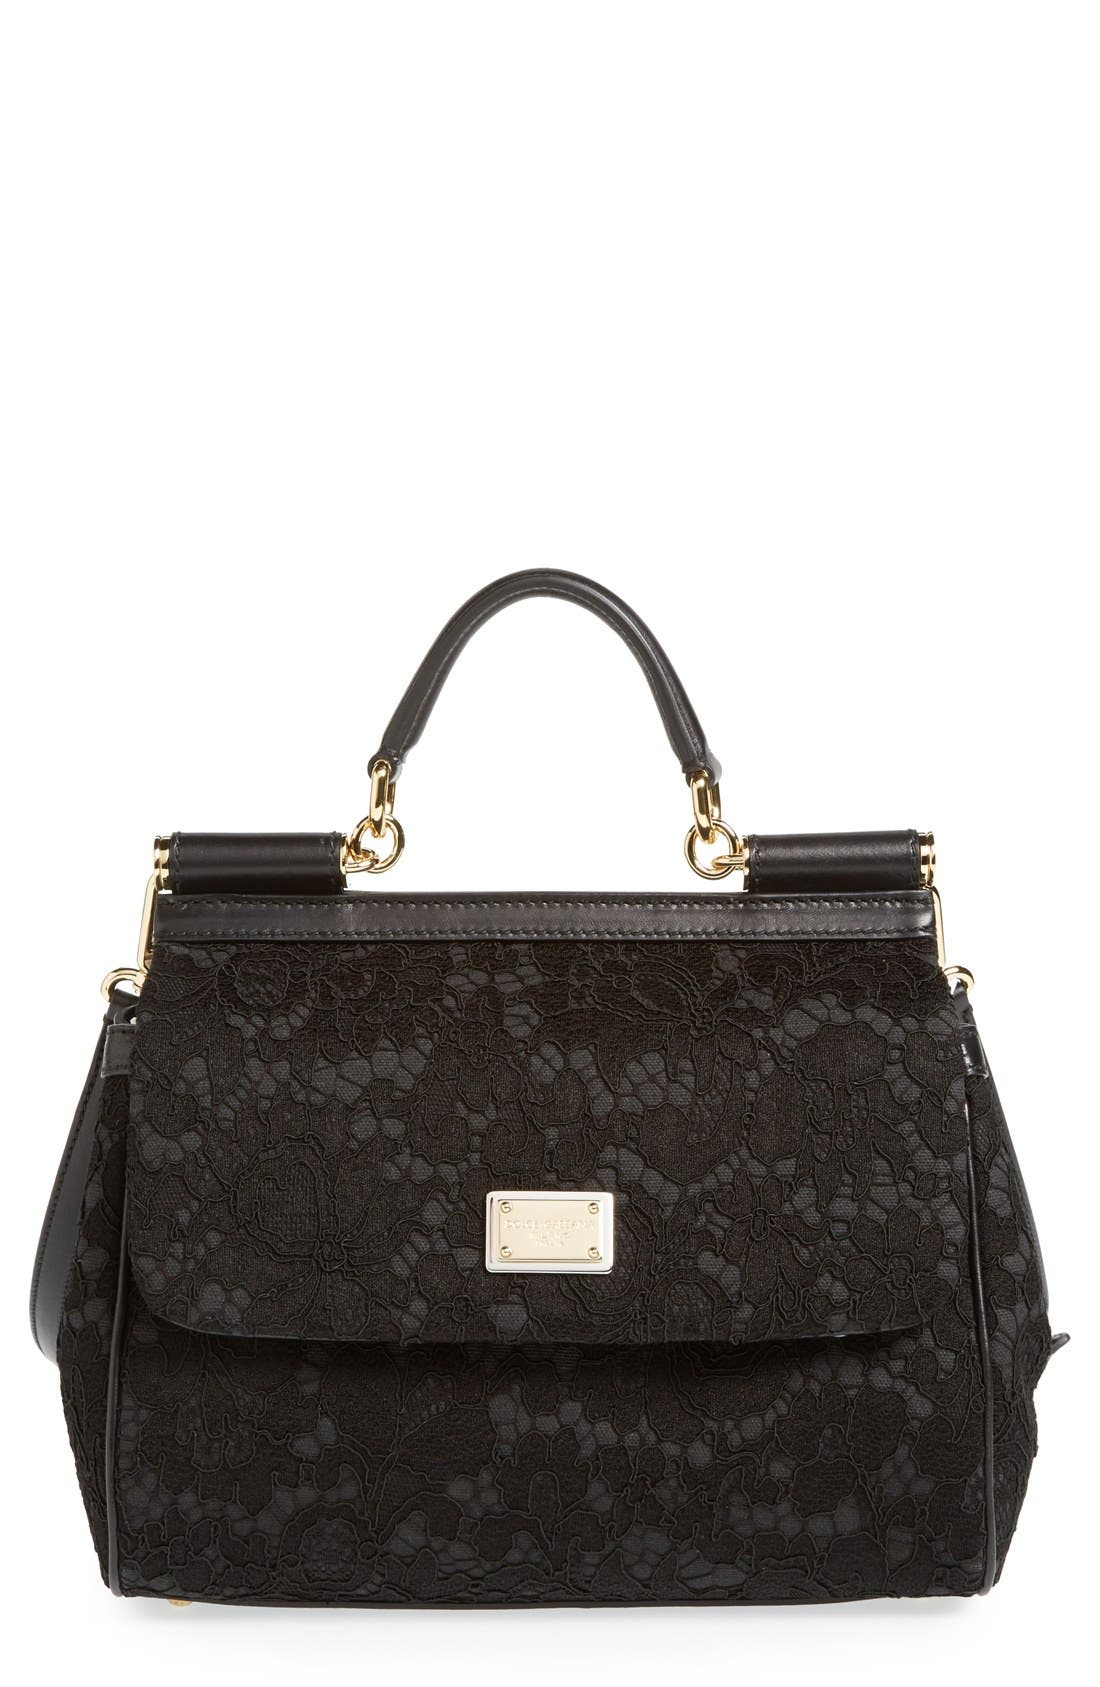 Alternate Image 1 Selected - Dolce&Gabbana 'Small Miss Sicily' Top Handle Satchel